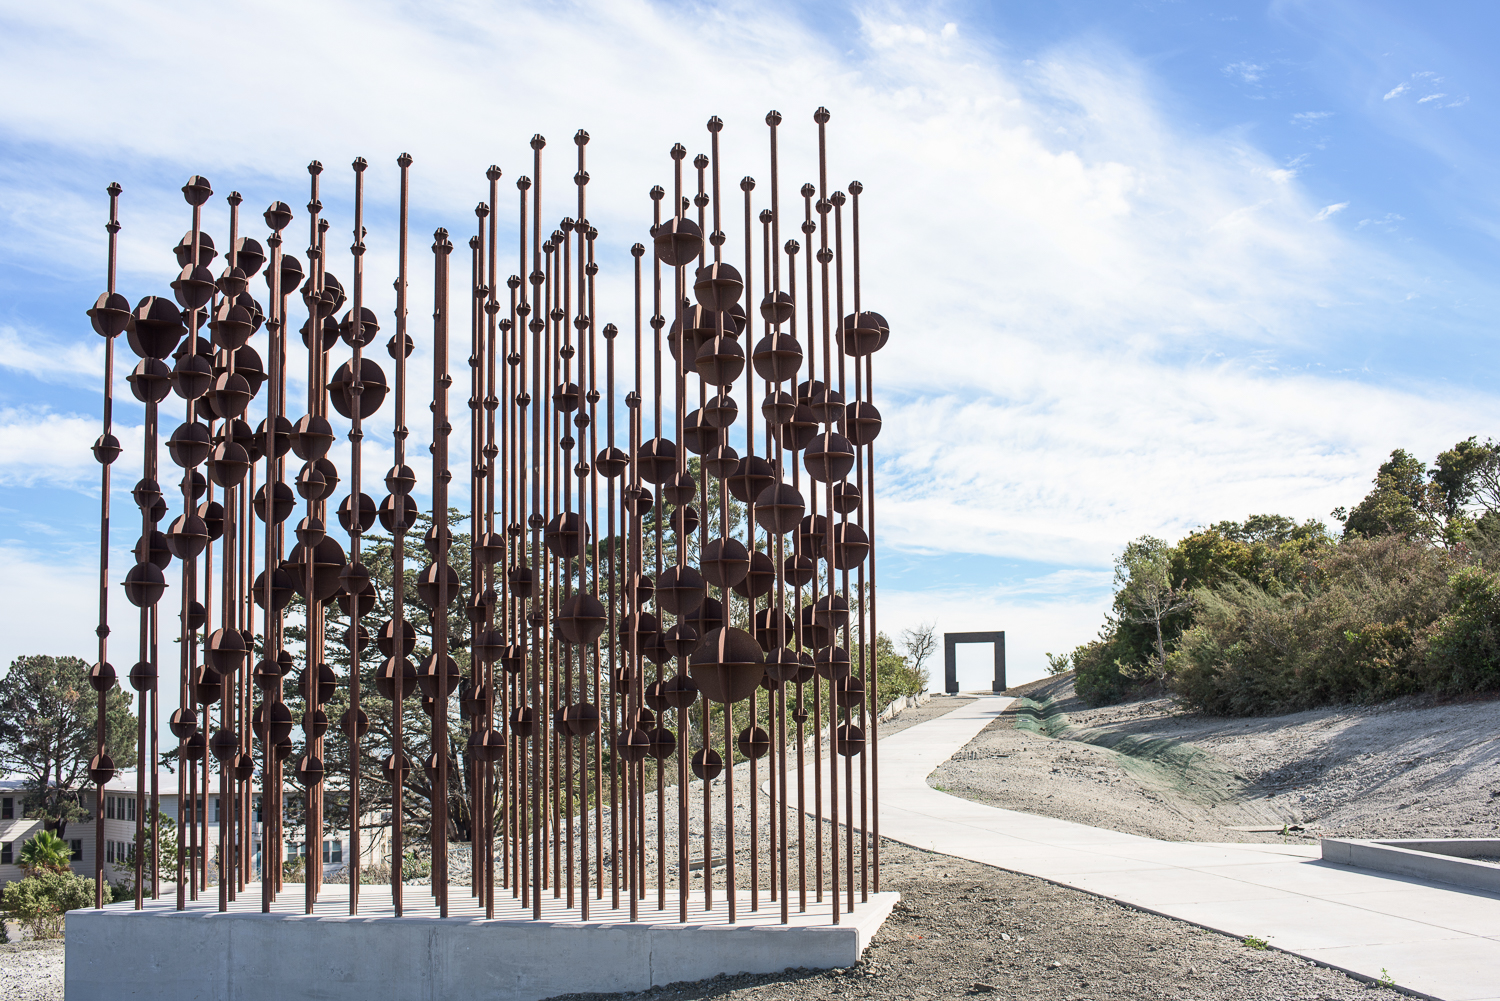 The Hunters Point Shipyard Artists is a community of artists who rent studios in the former shipyard on Hunters Point and host biannual art shows.